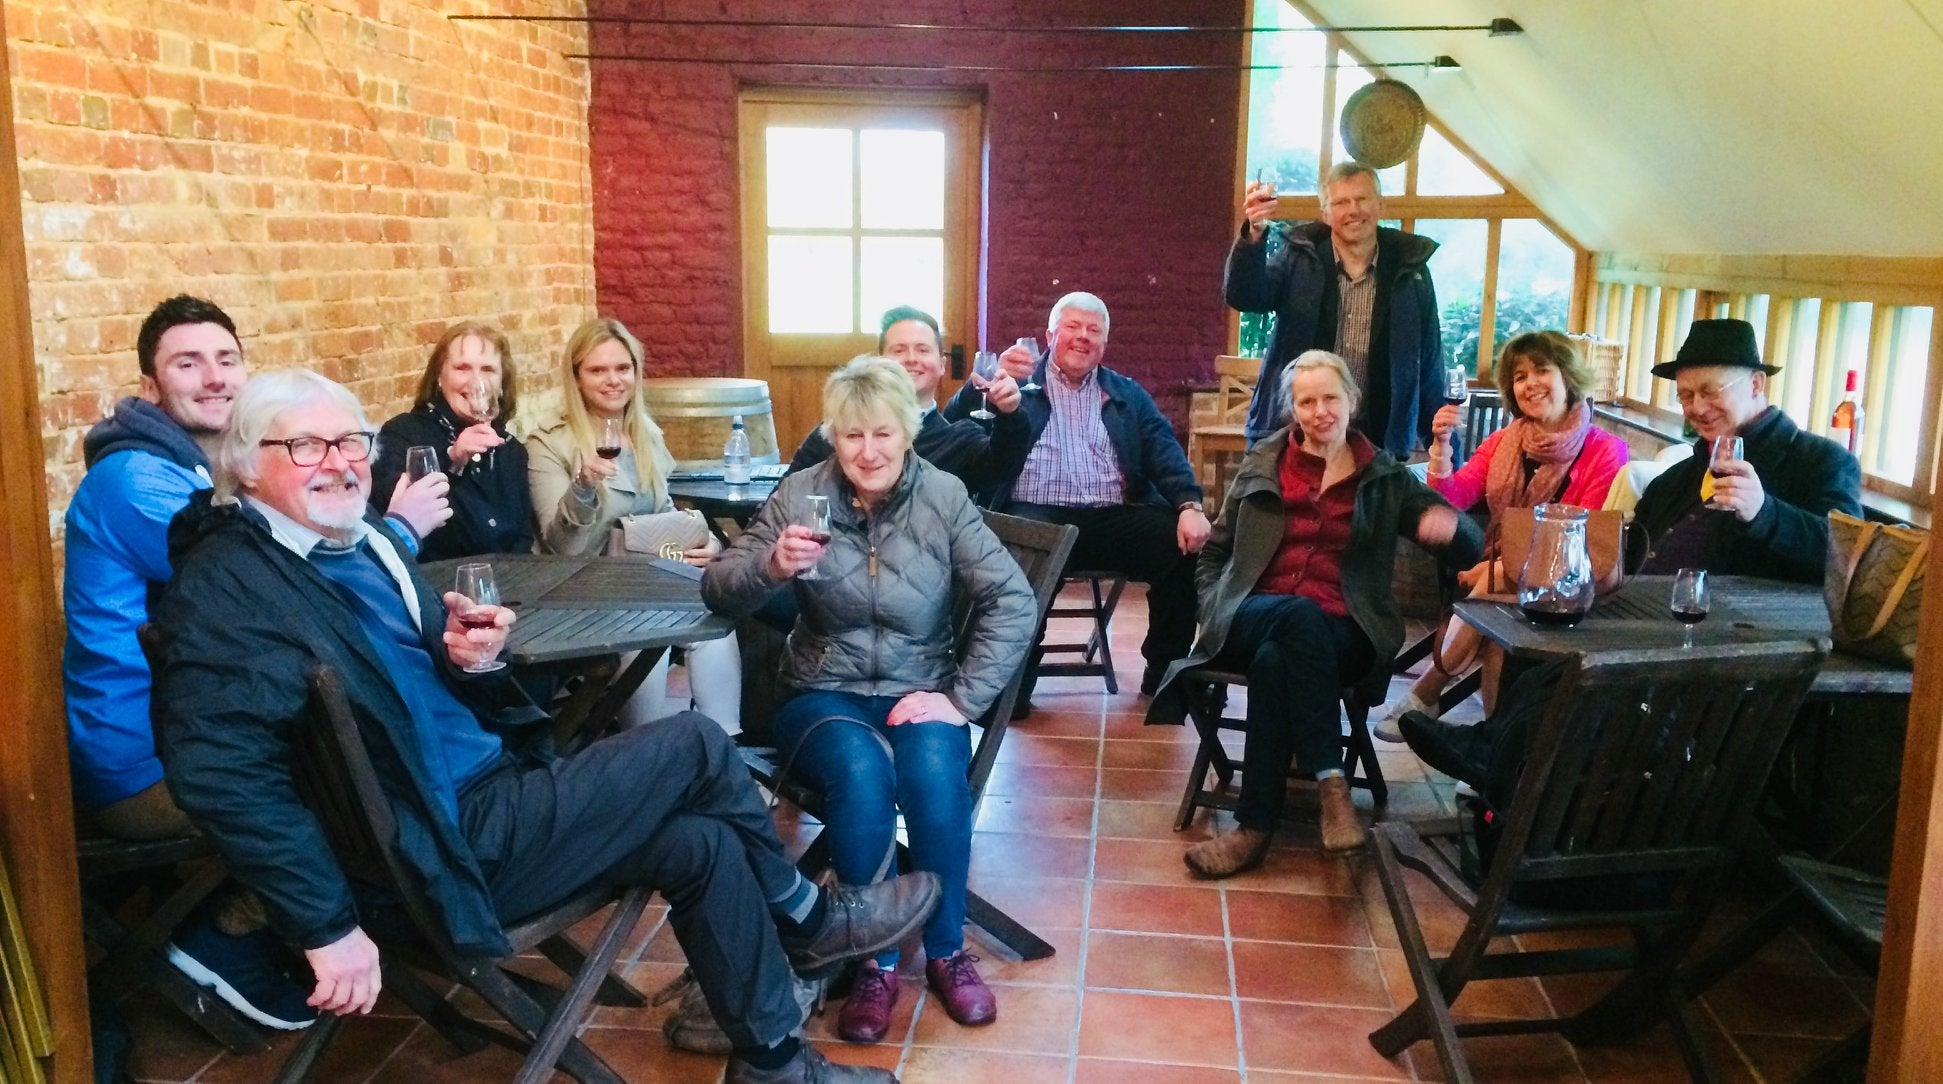 Saturday 20th April 2019 at 2pm - WINE LOVER Tour